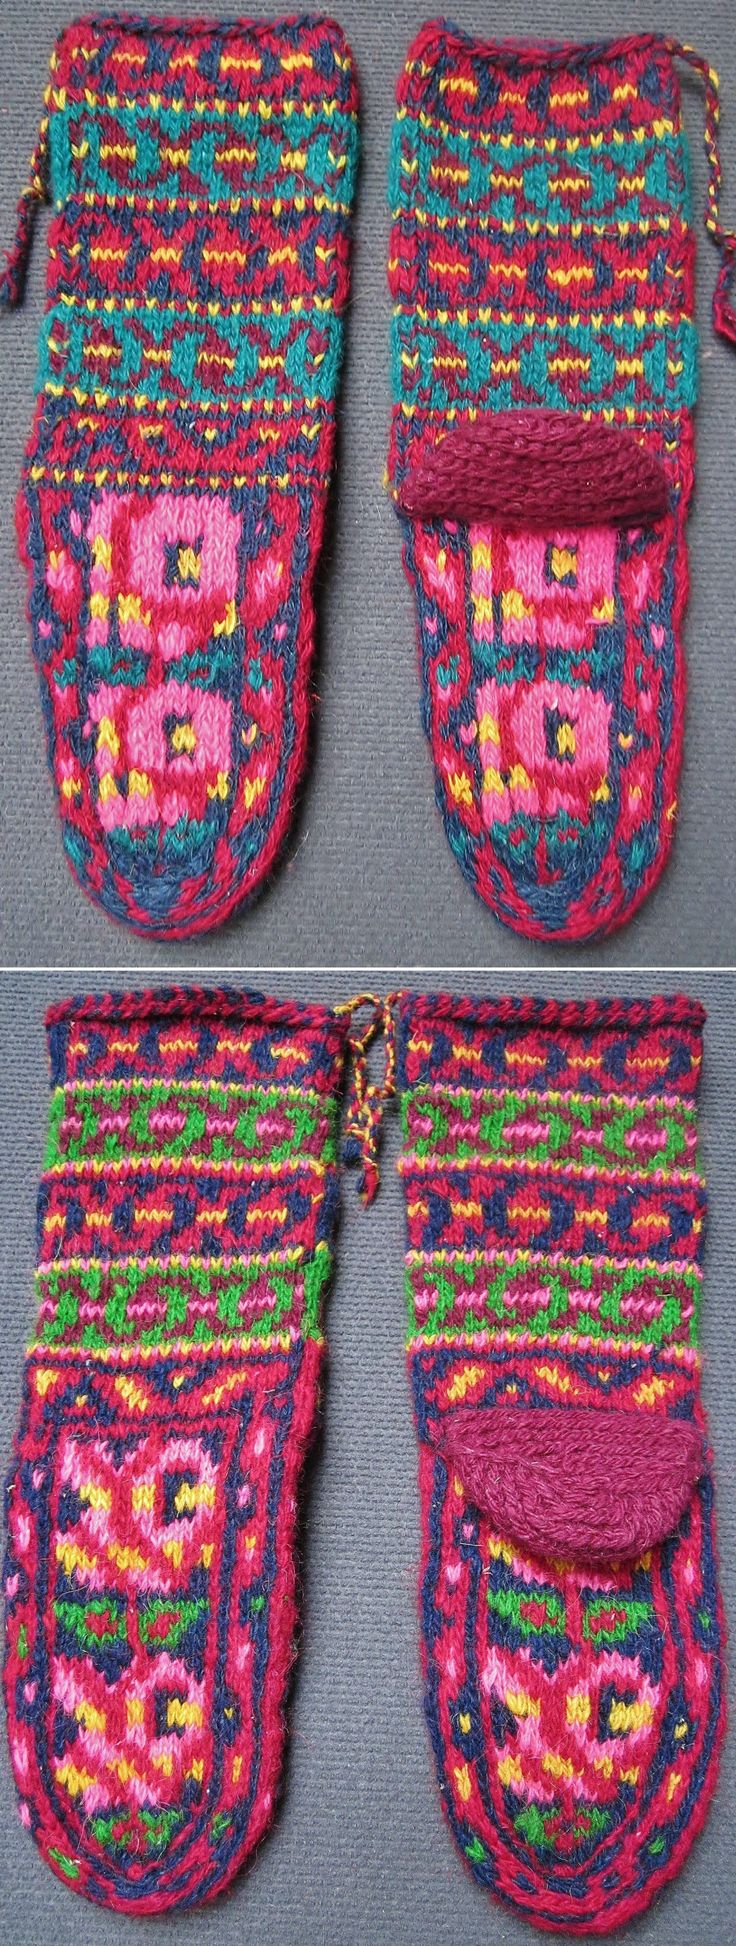 Two pairs of traditional hand-knitted short woollen socks, for women.   Lezgin, from southern Daghestan.  Late 20th century (1980s). (Inv.nr. çor071 & 072 - Kavak Costume Collection - Antwerpen/Belgium).